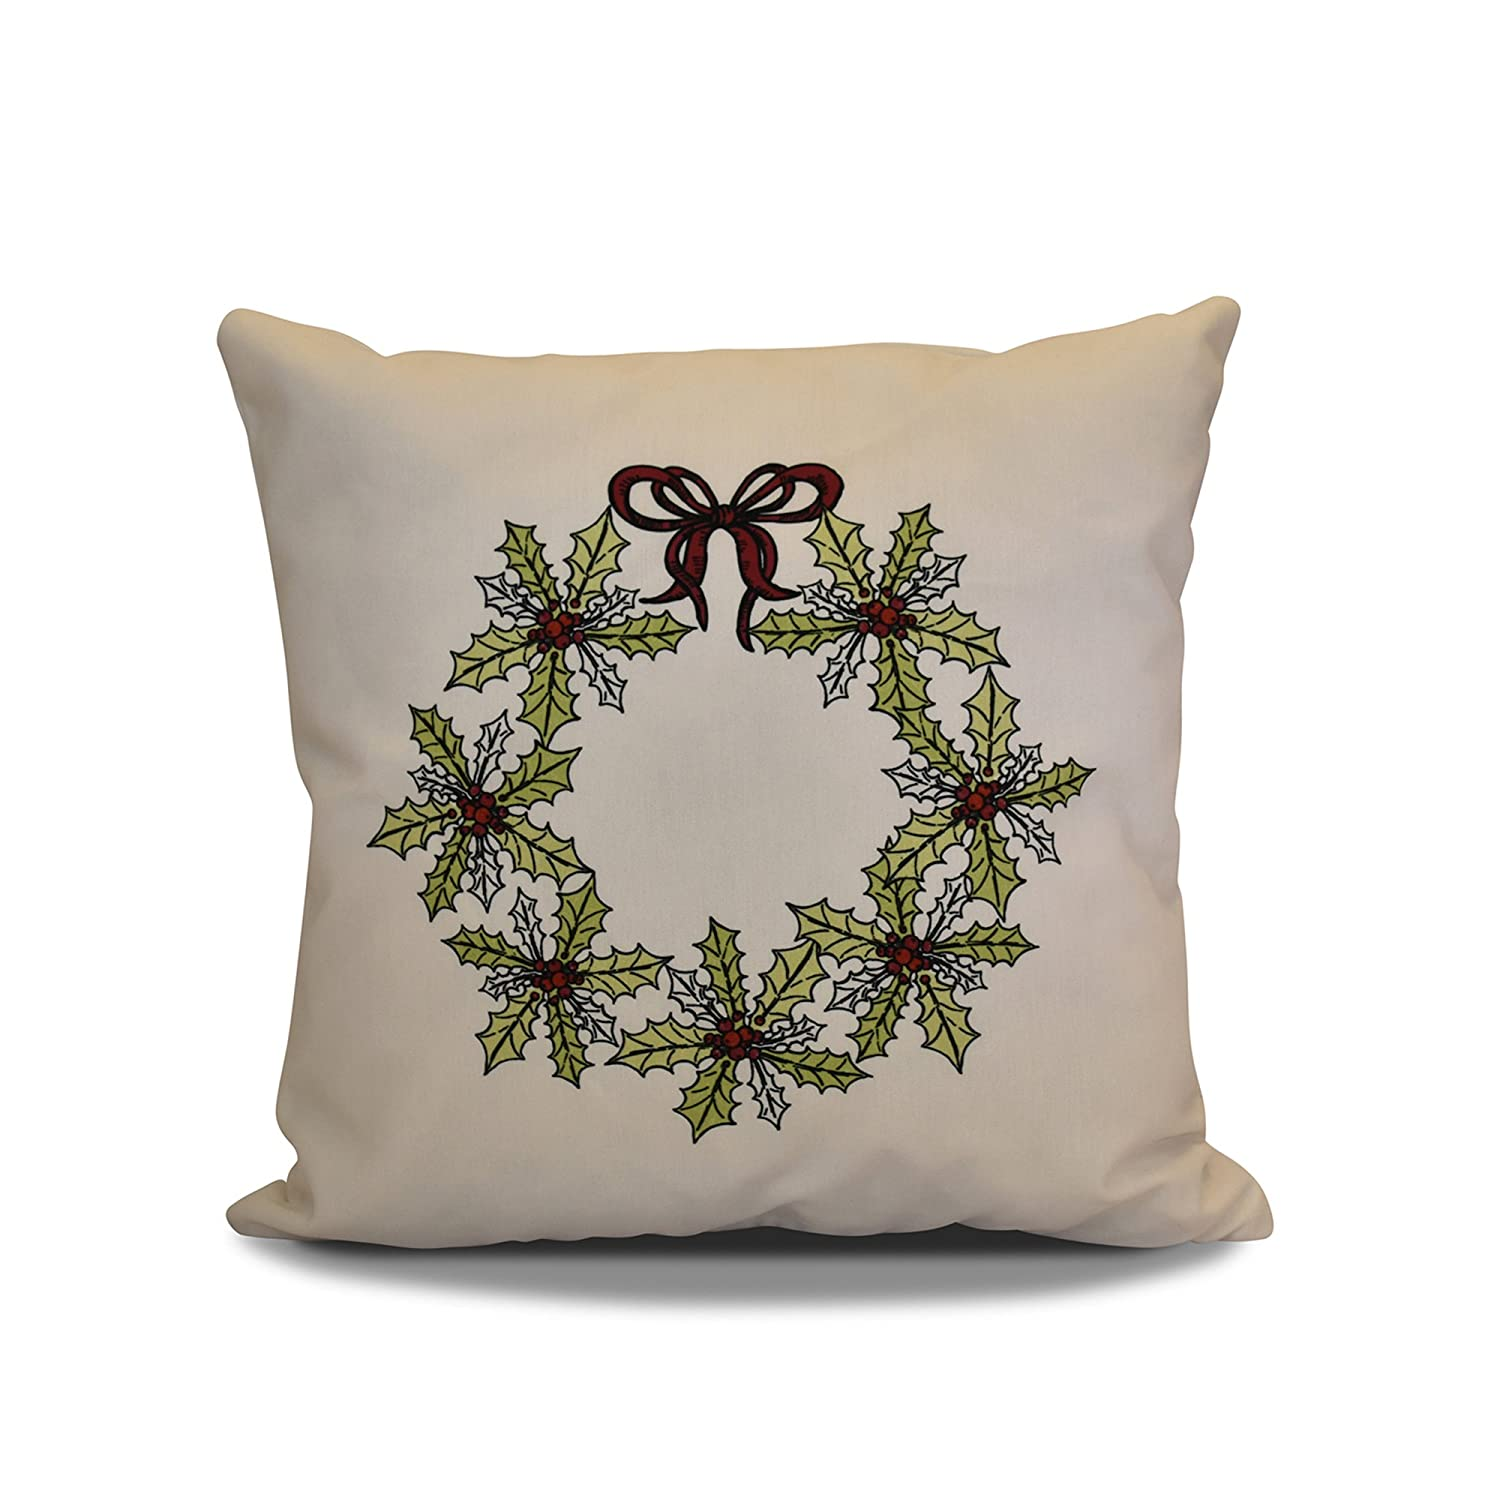 Green Decorative Holiday Pillow Floral Print E by design PHFN674GR10RE6-18 18 x 18 inch